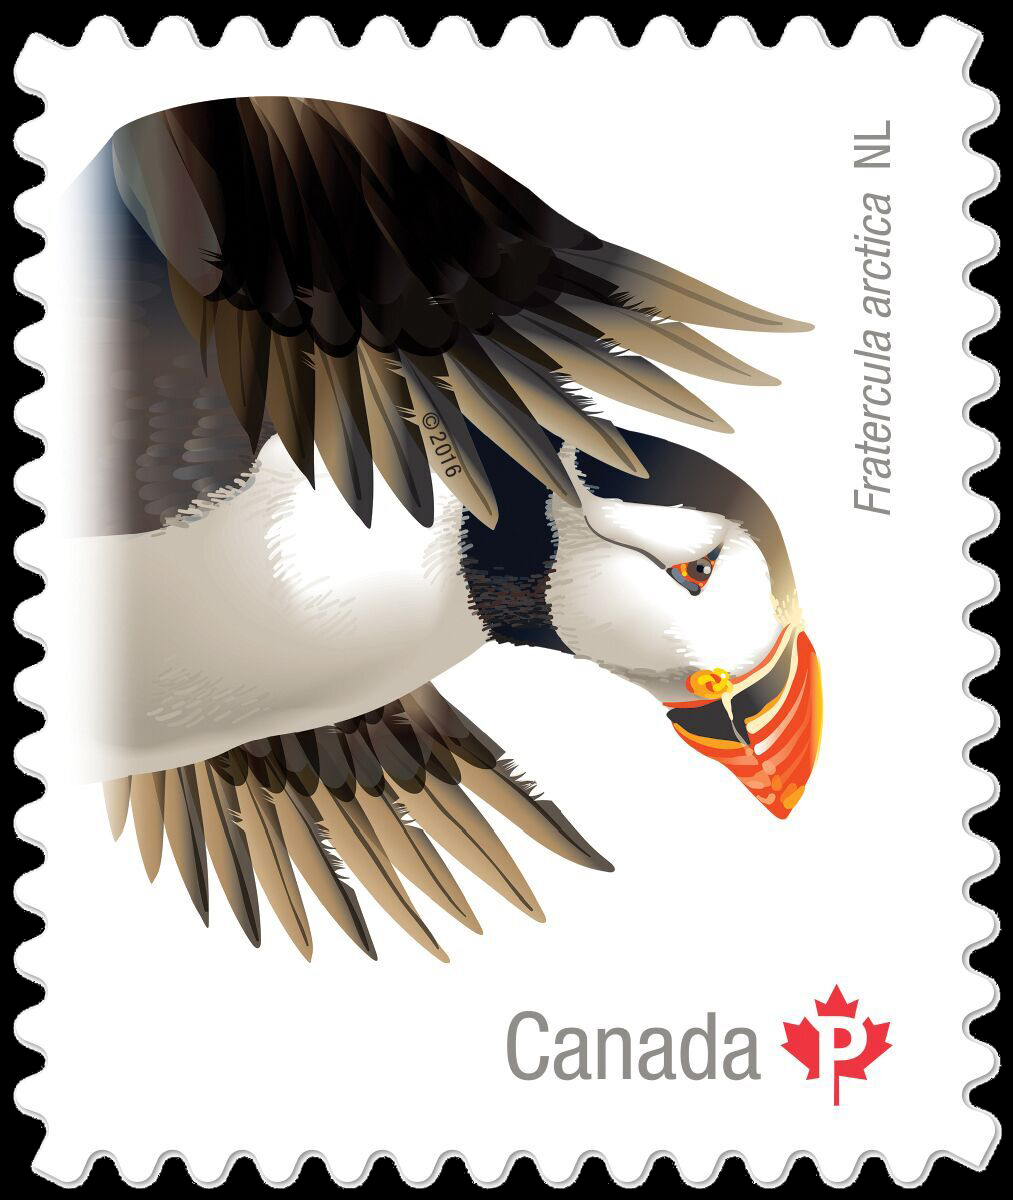 Atlantic Puffin (Fratercula Arctica) Newfoundland and Labrador Canada Postage Stamp | Birds of Canada